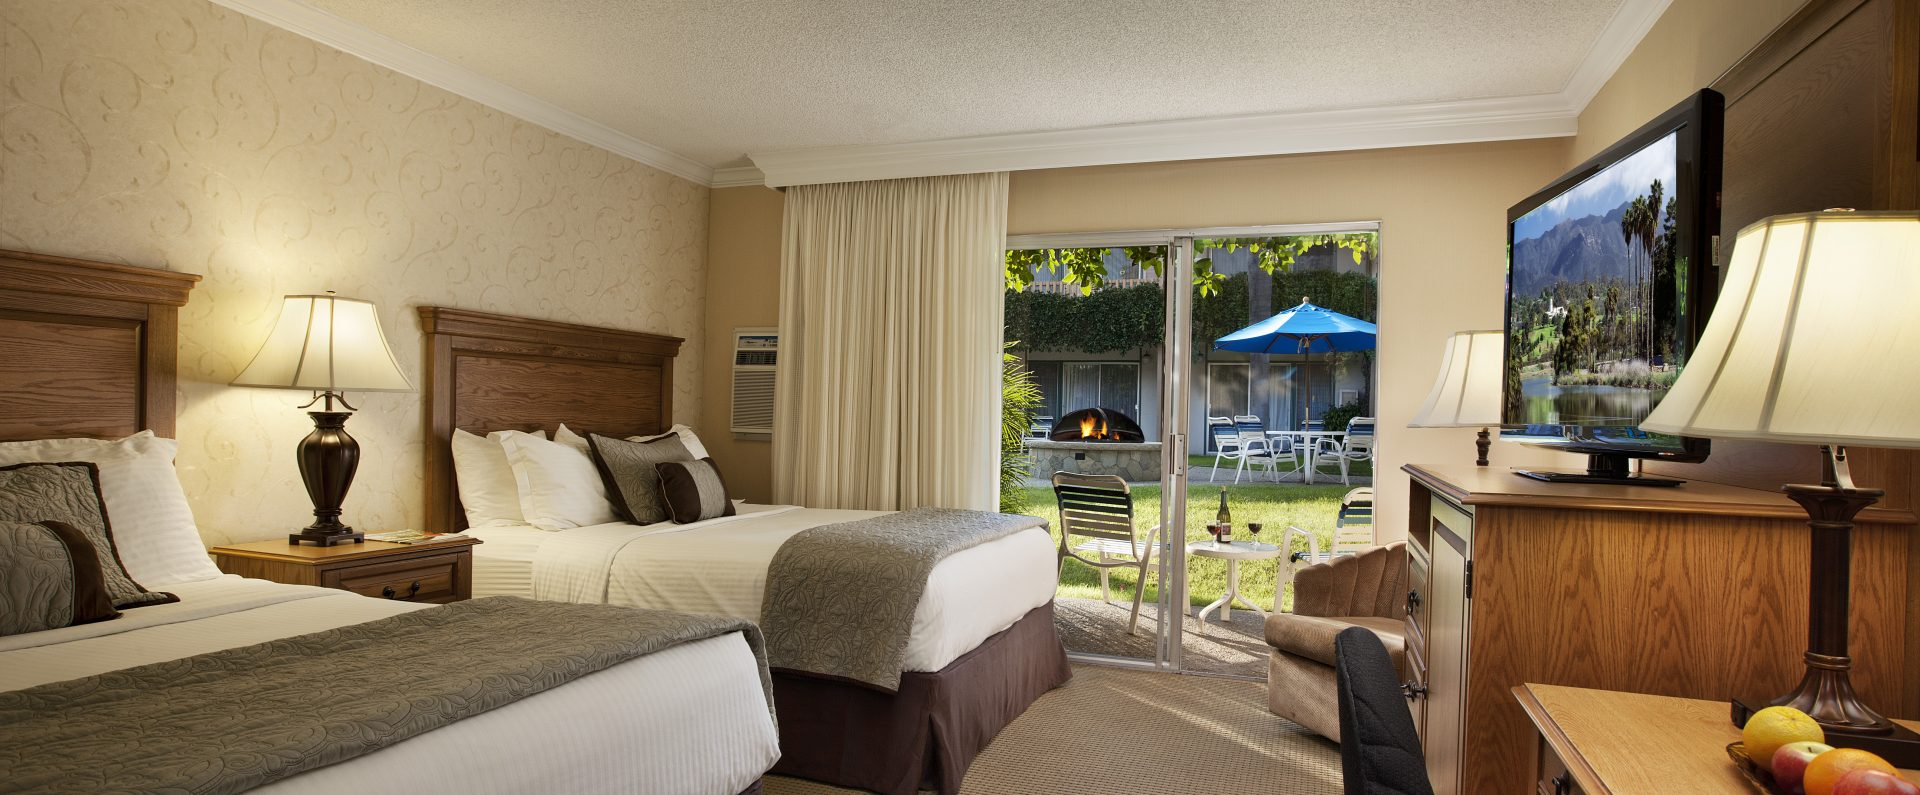 Two Queen double rooms at Best Western Plus Pepper Tree Inn